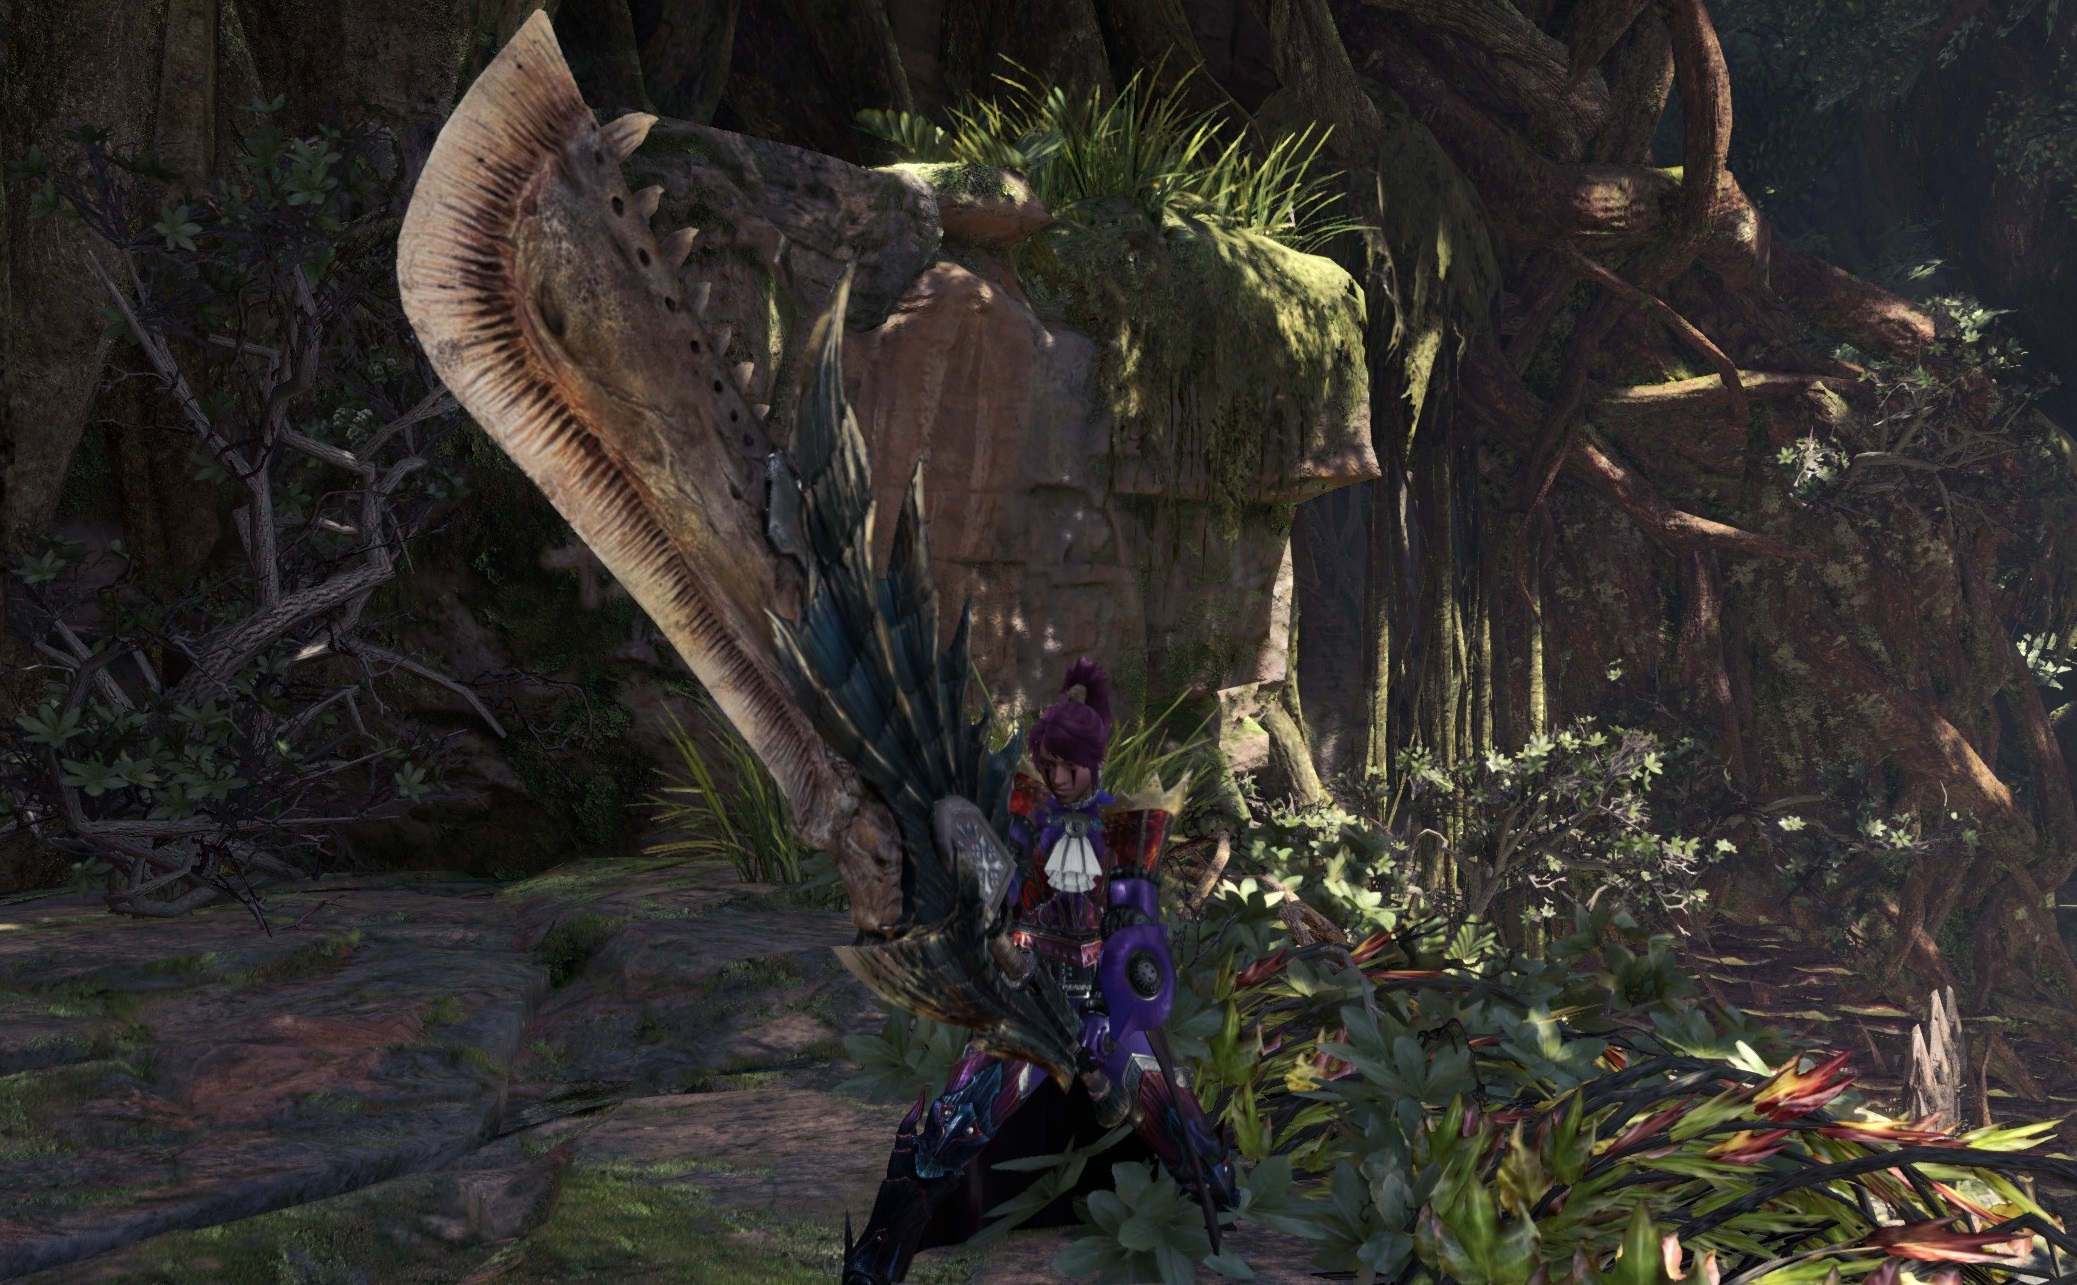 Monster Hunter S Greatsword Has The Best Videogame Animation Since